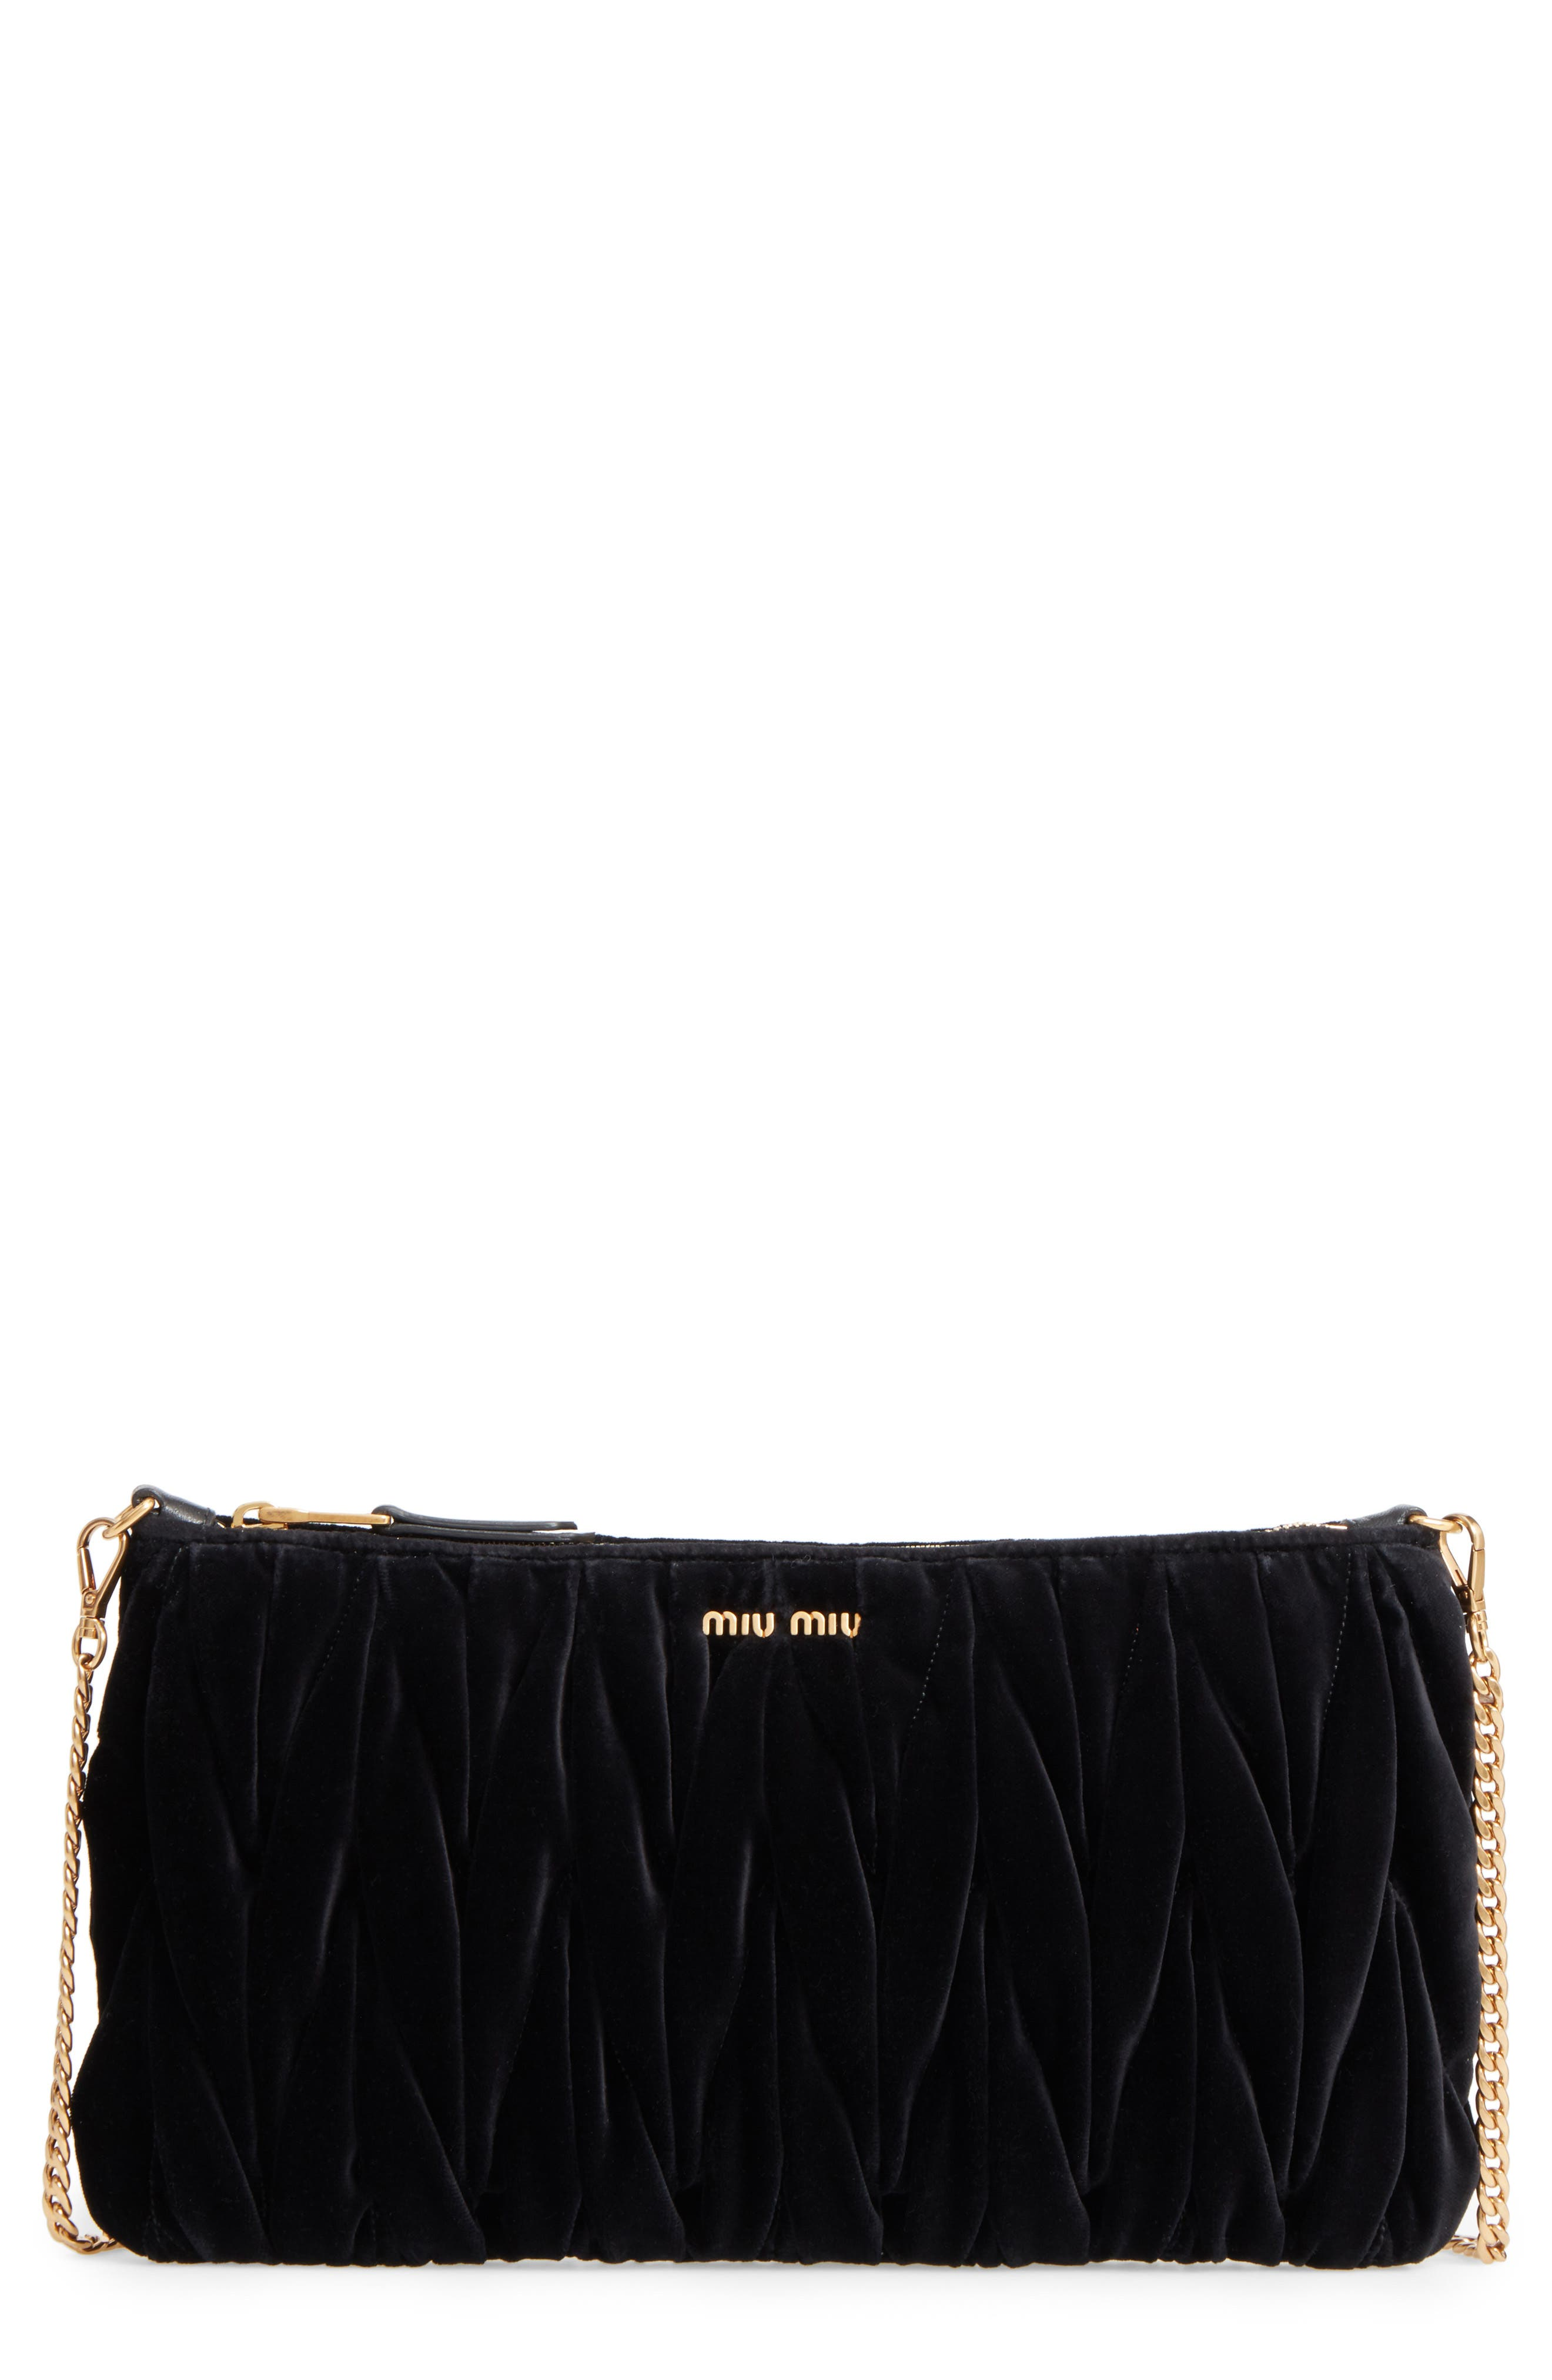 Alternate Image 1 Selected - Miu Miu Velvet Matelassé Clutch